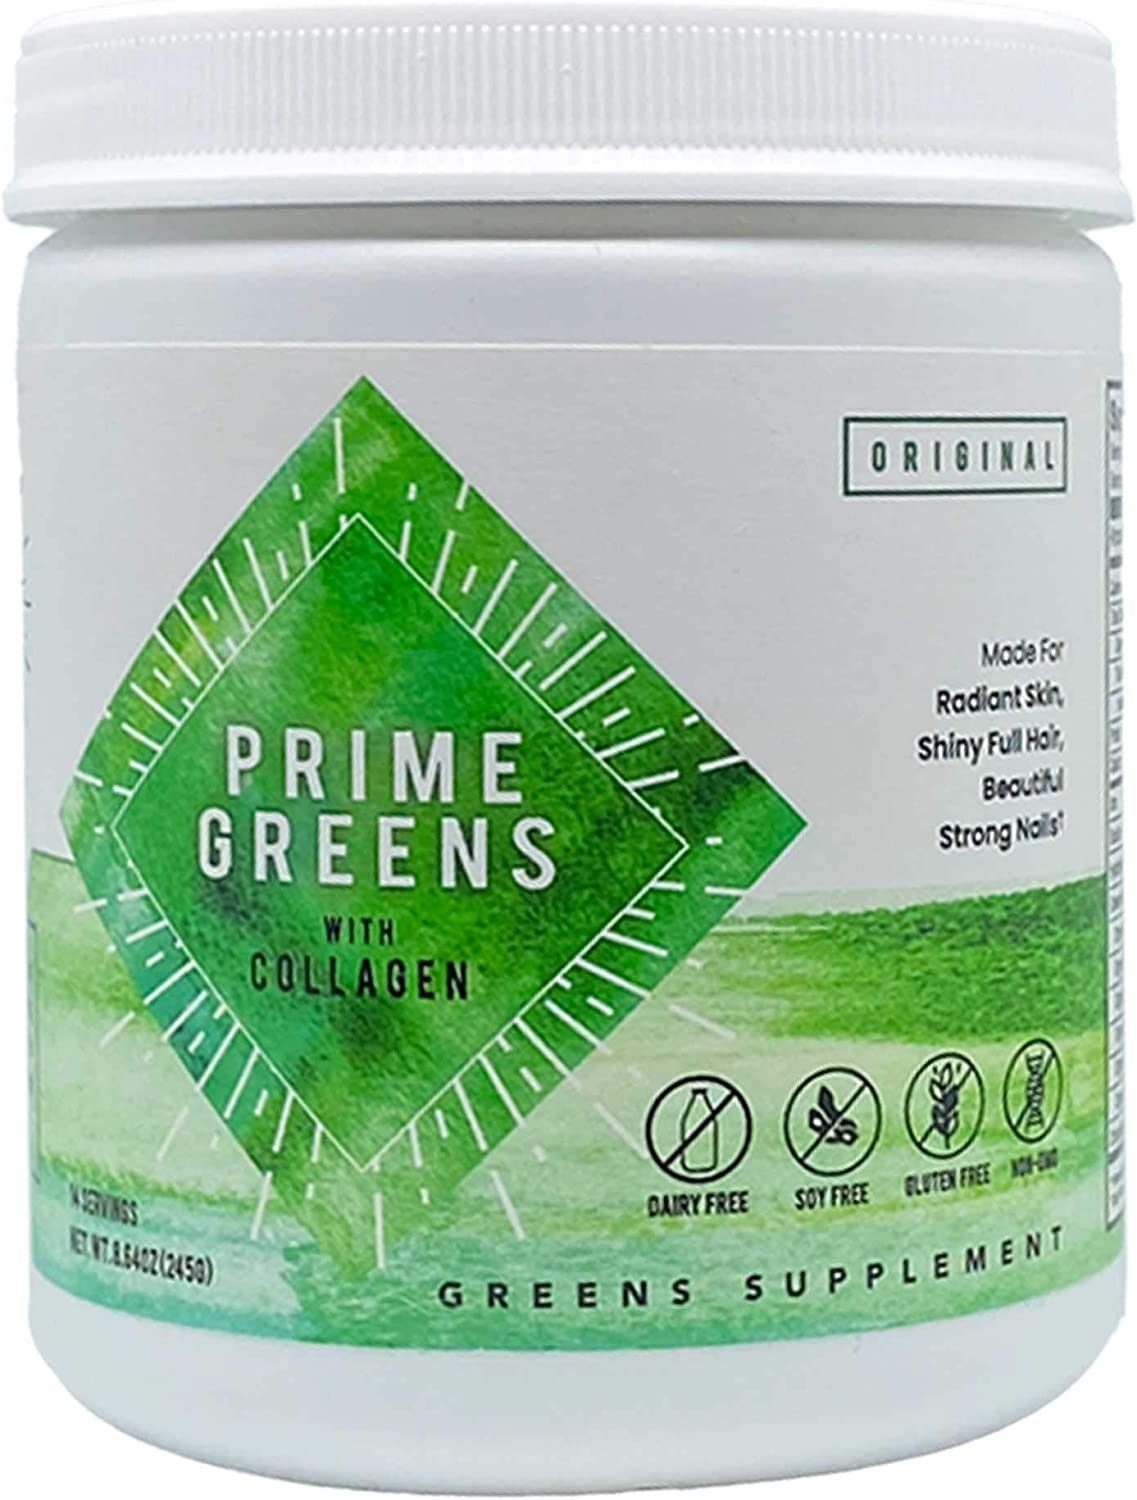 Prime Greens with Collagen   Premium Green Superfood Powder for Detoxification, Radiant Skin, Renewed Energy, Anti-Aging, and Immune-Support